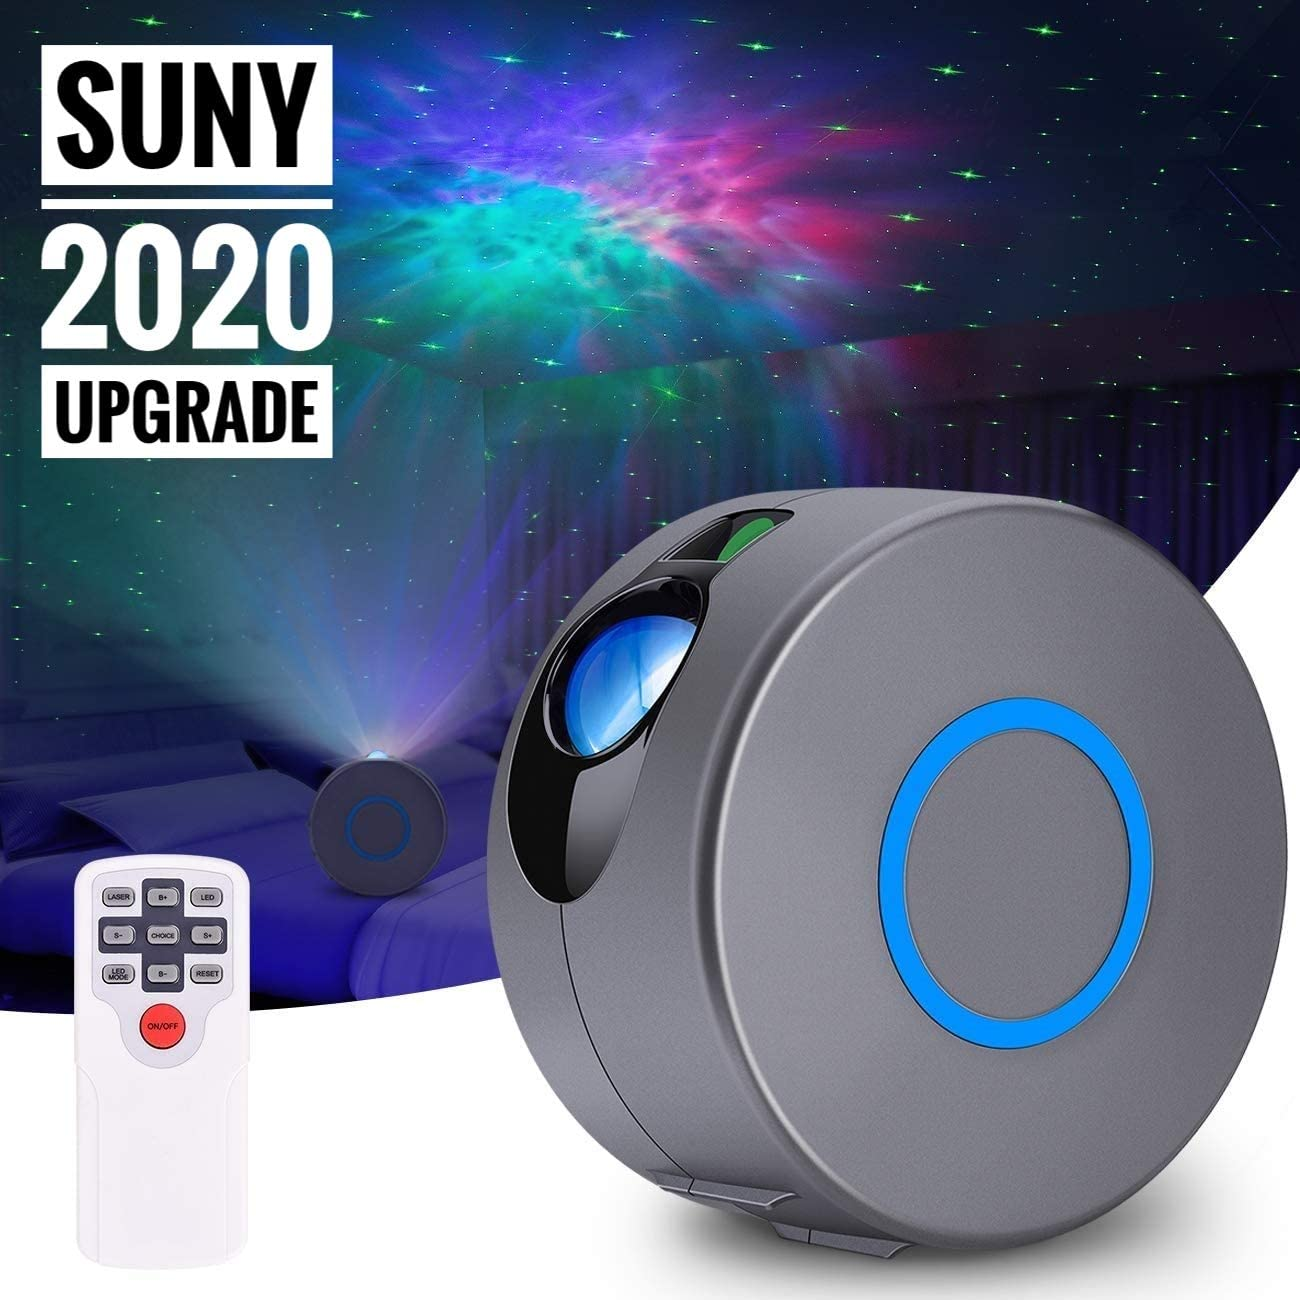 SUNY Galaxy Projector w/RGB Led Nebula Cloud, Green Star Light Projector, Starry Night Light Projector w/Remote Control for Kids Adults Birthday Gift/Bedroom/Game Room/Home Theatre